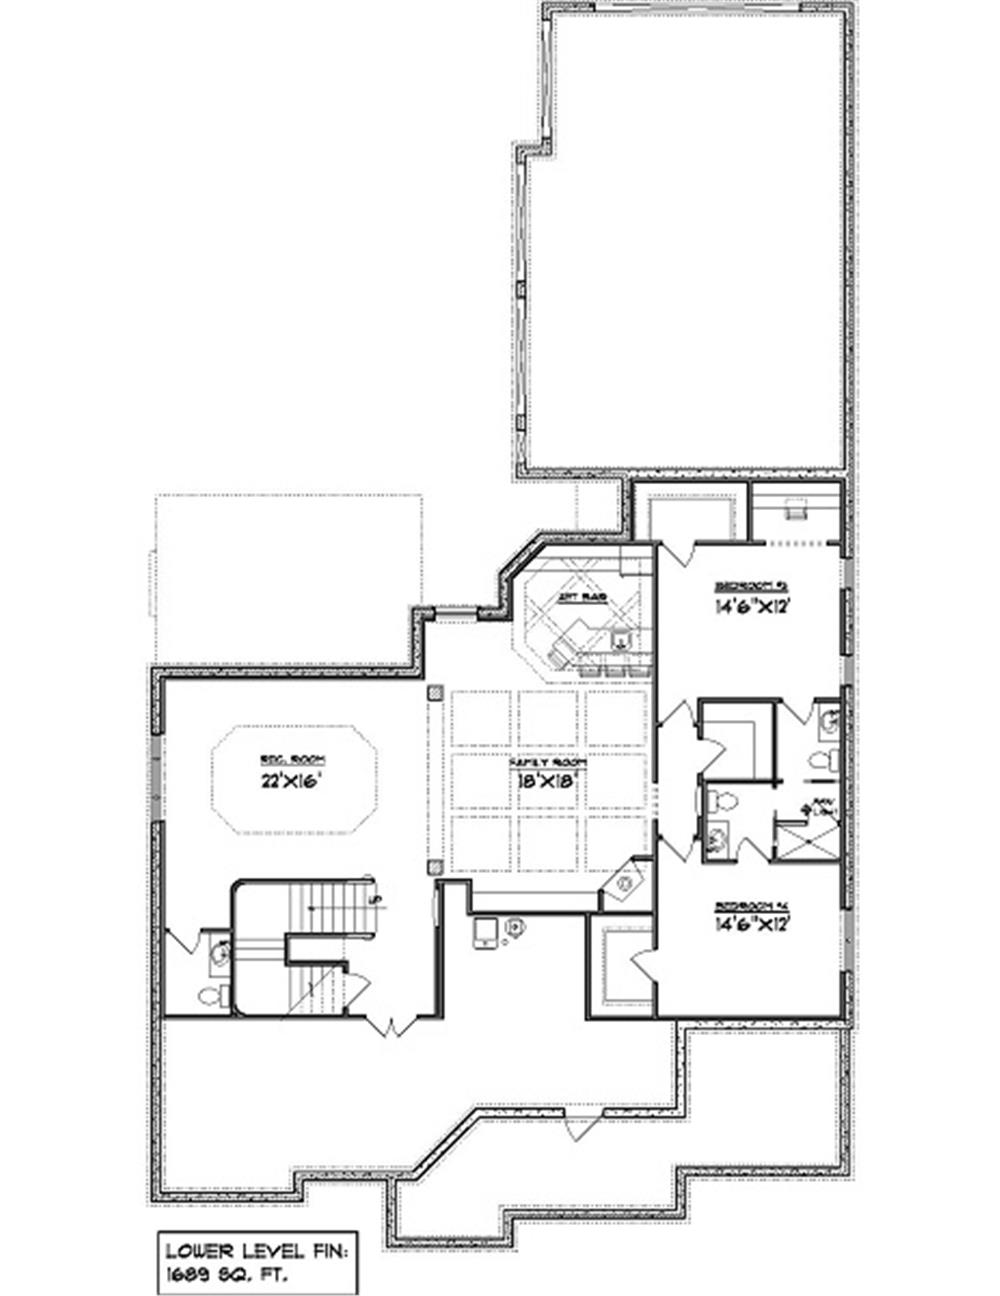 101-1874: Floor Plan Basement